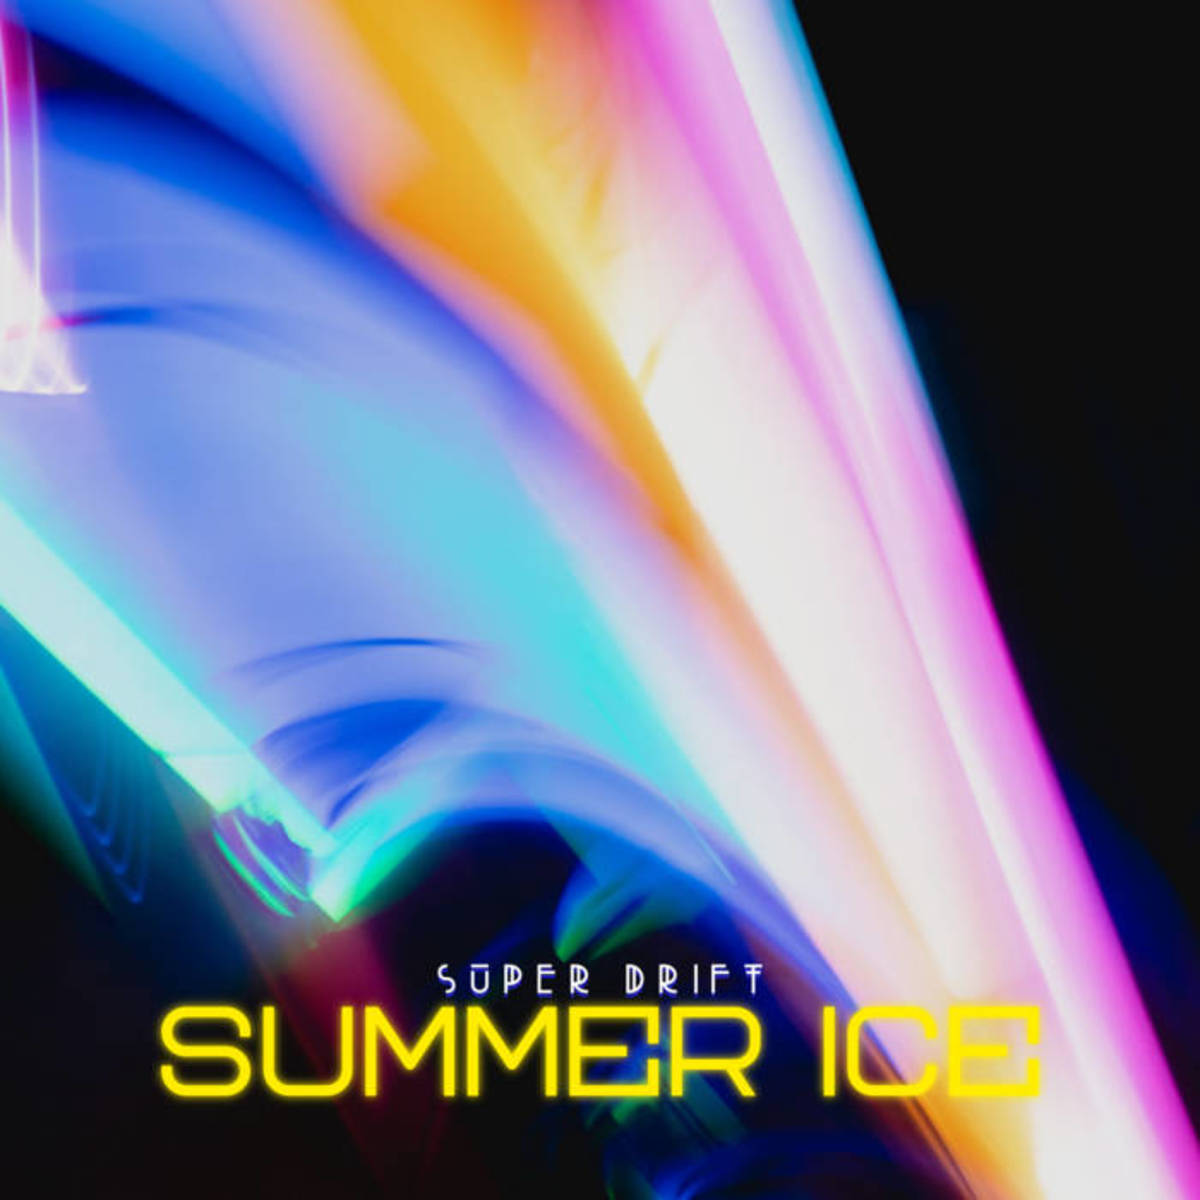 synthwave-single-review-summer-ice-by-super-drift